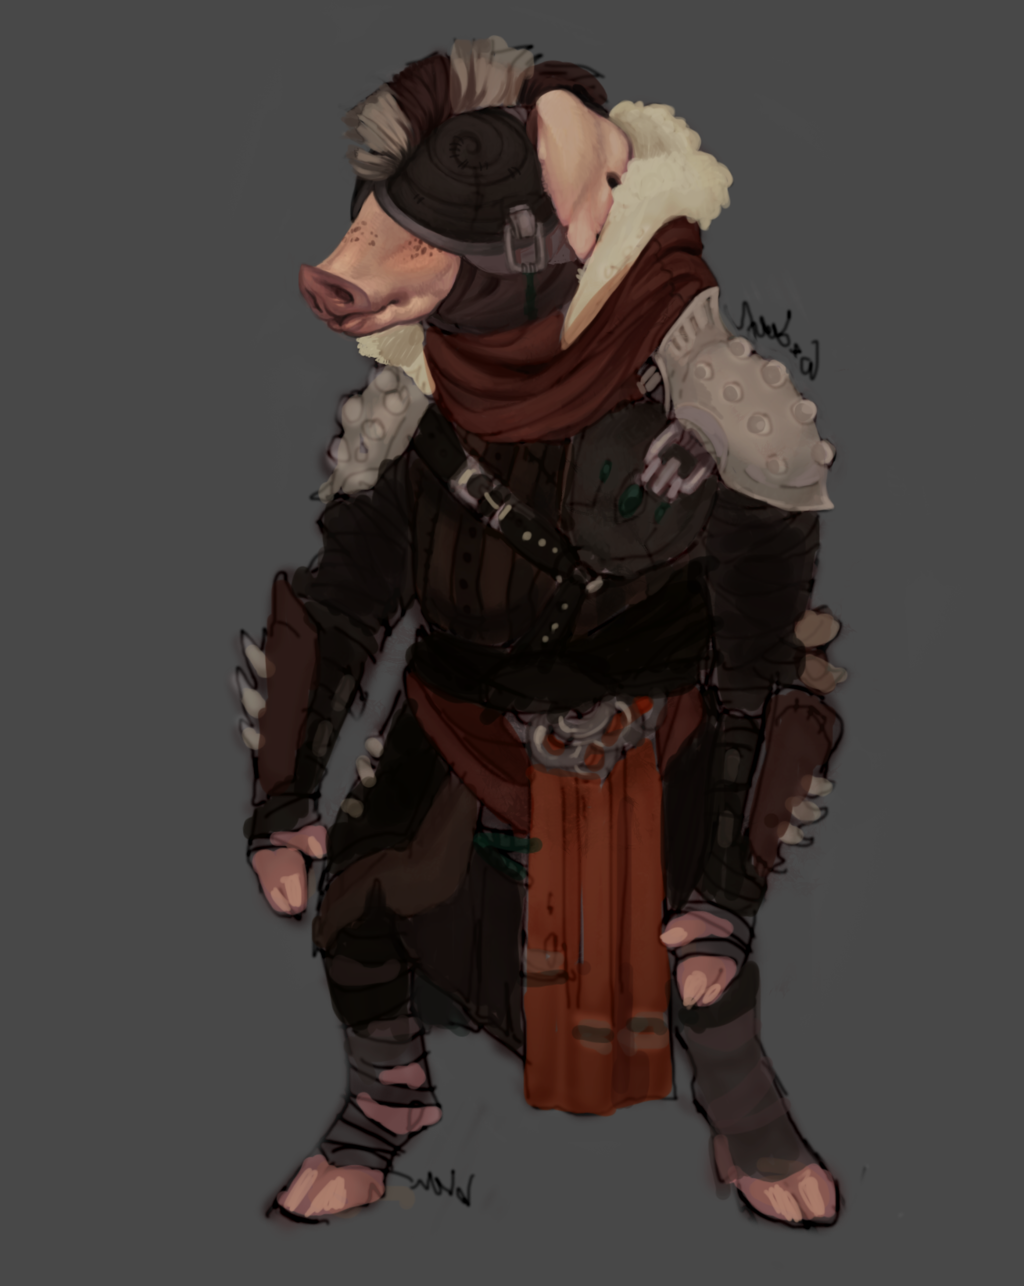 Most recent image: Billy wip